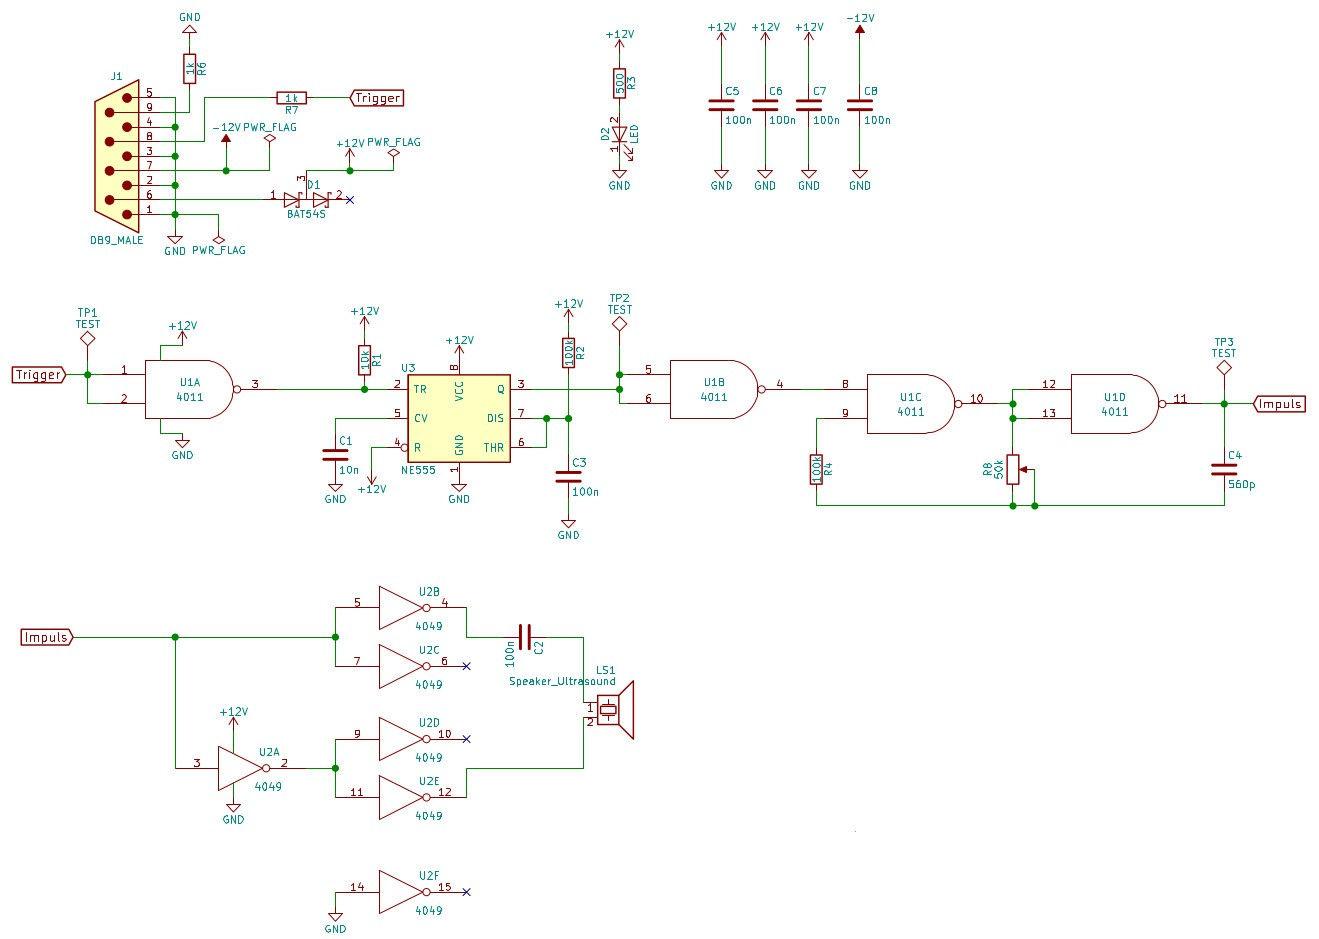 Schematic Diagram First Drafts Details Creating Circuit Diagrams An Overview My Plan Is To Build Sub Modules That Transmit And Receive Both Use The Same Interface Which Will Also Be Used By A Measurement Device